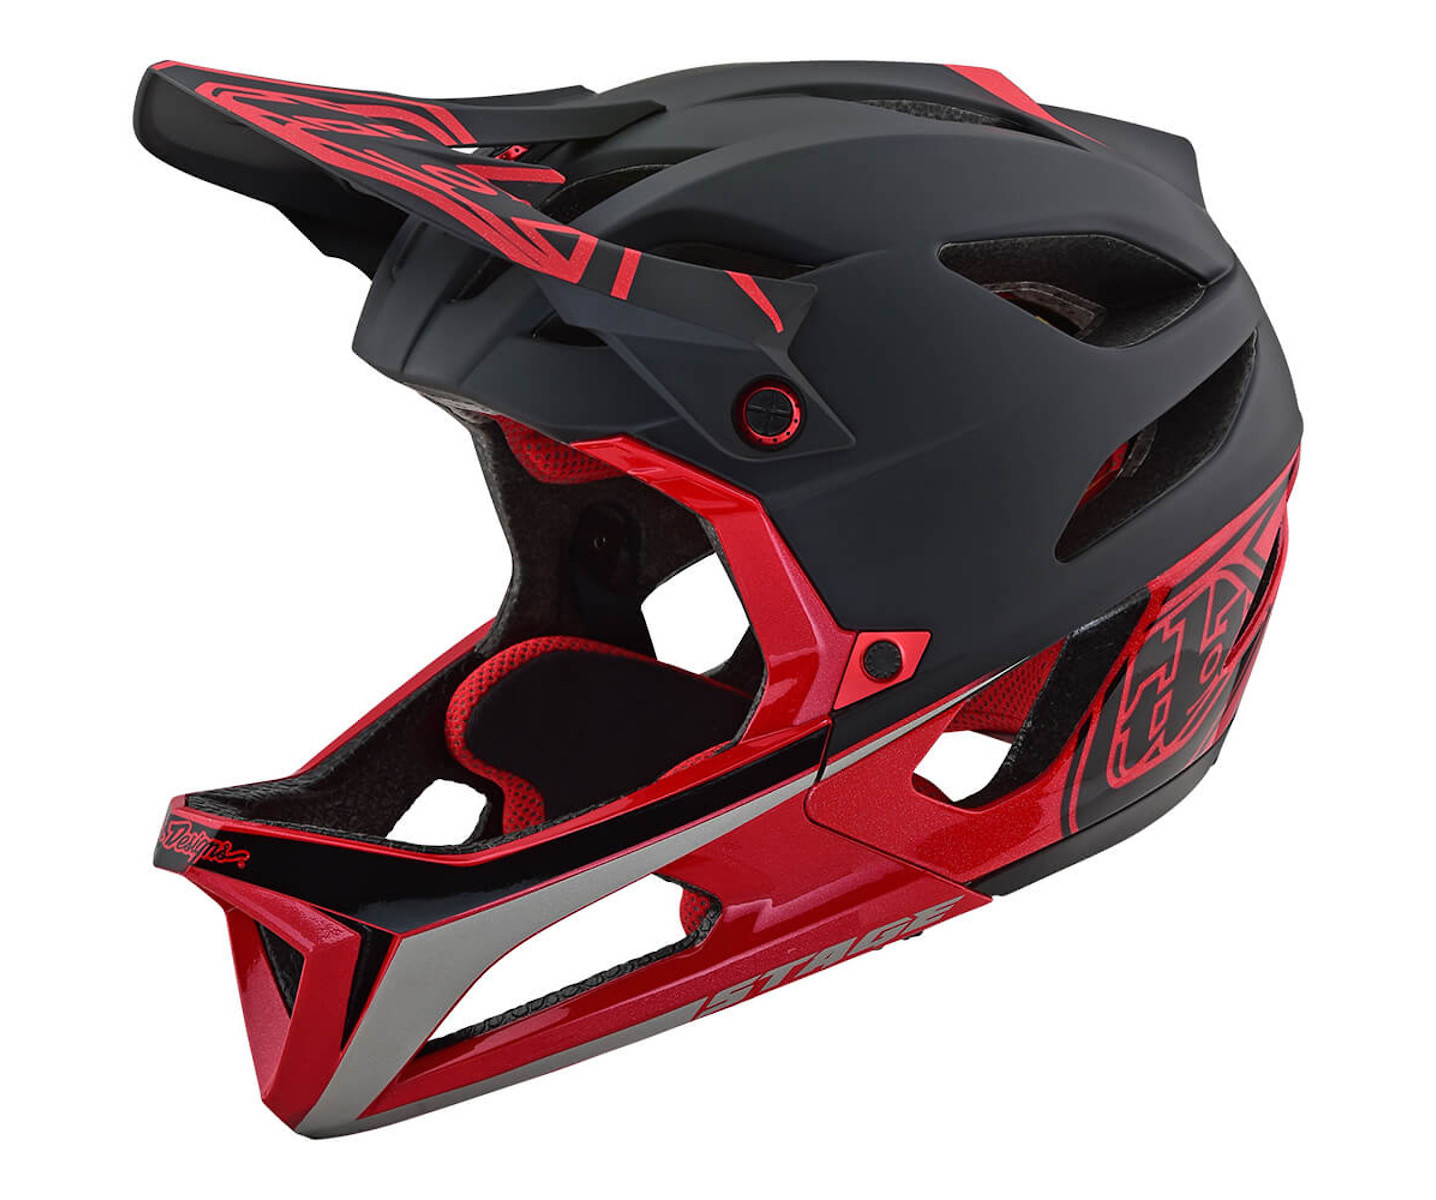 Stage Race (Black/Red)